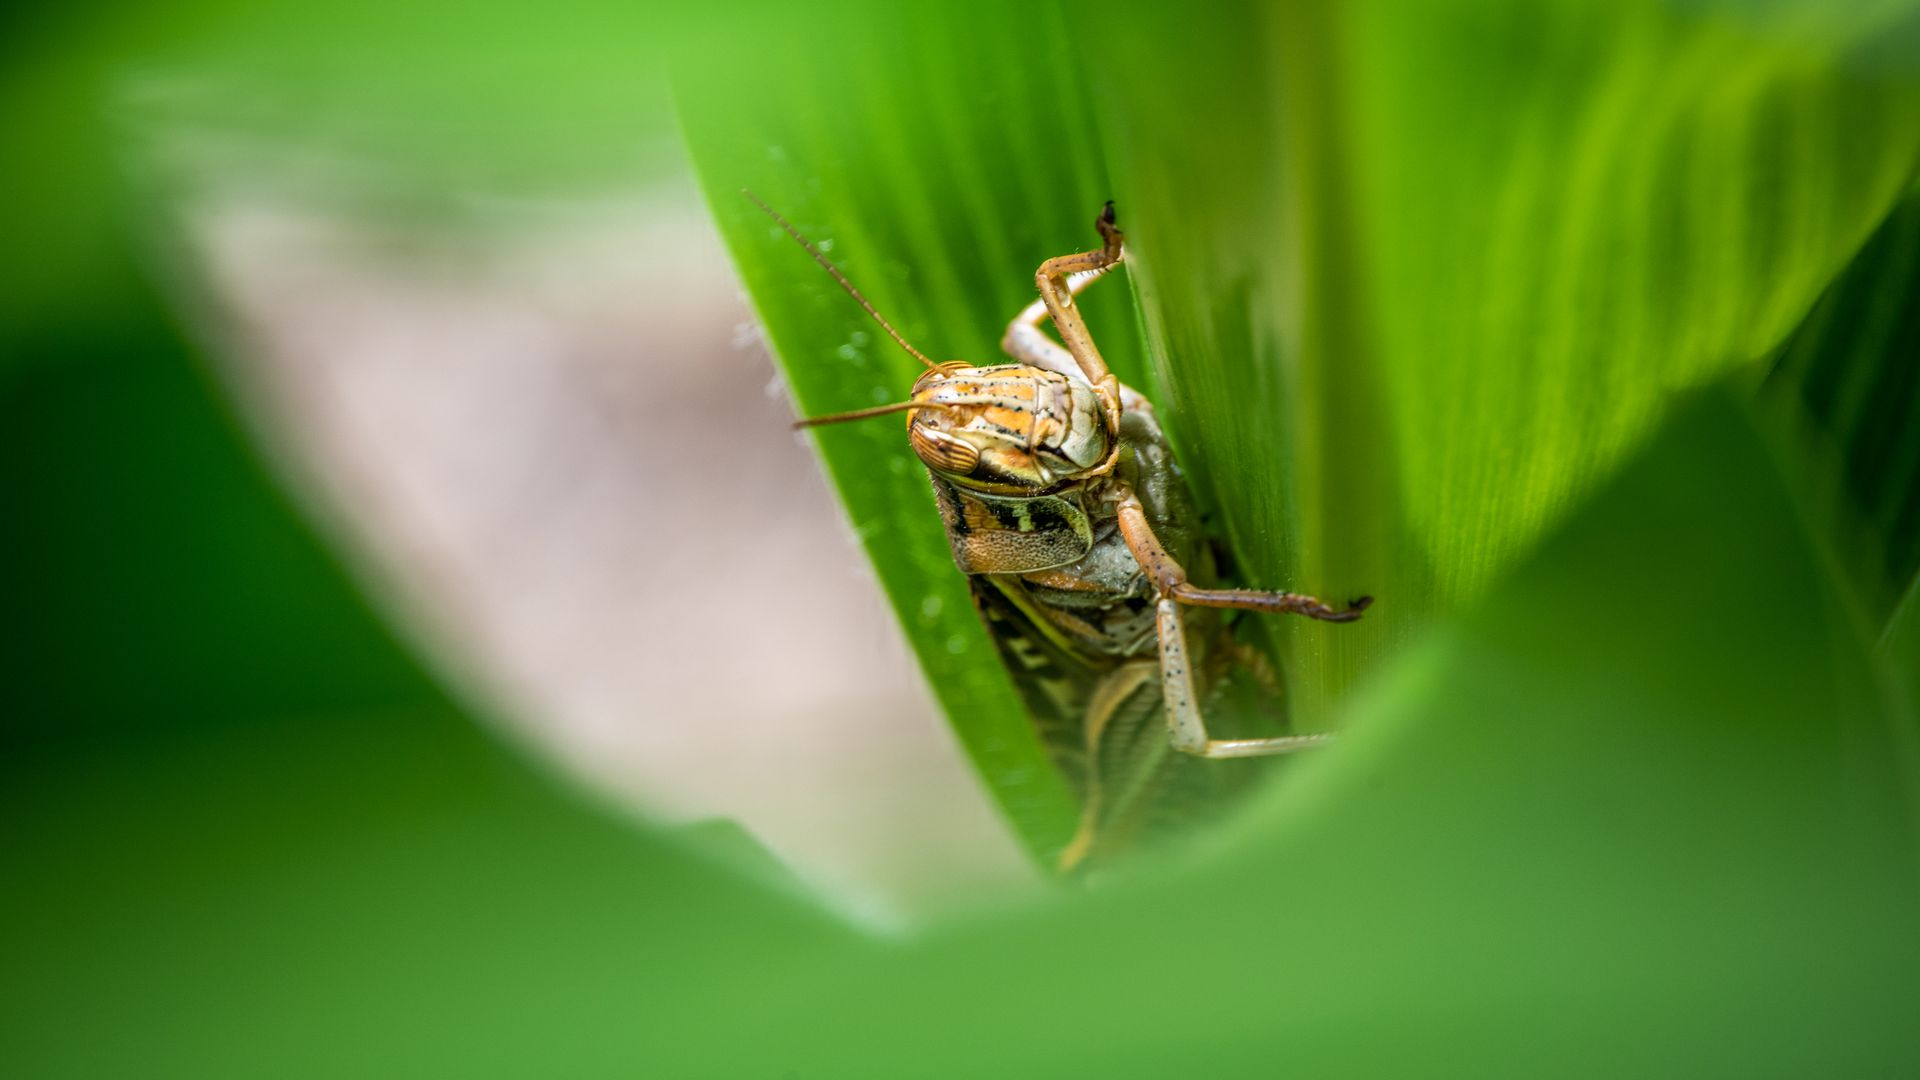 Picture taken up-close of a grasshopper